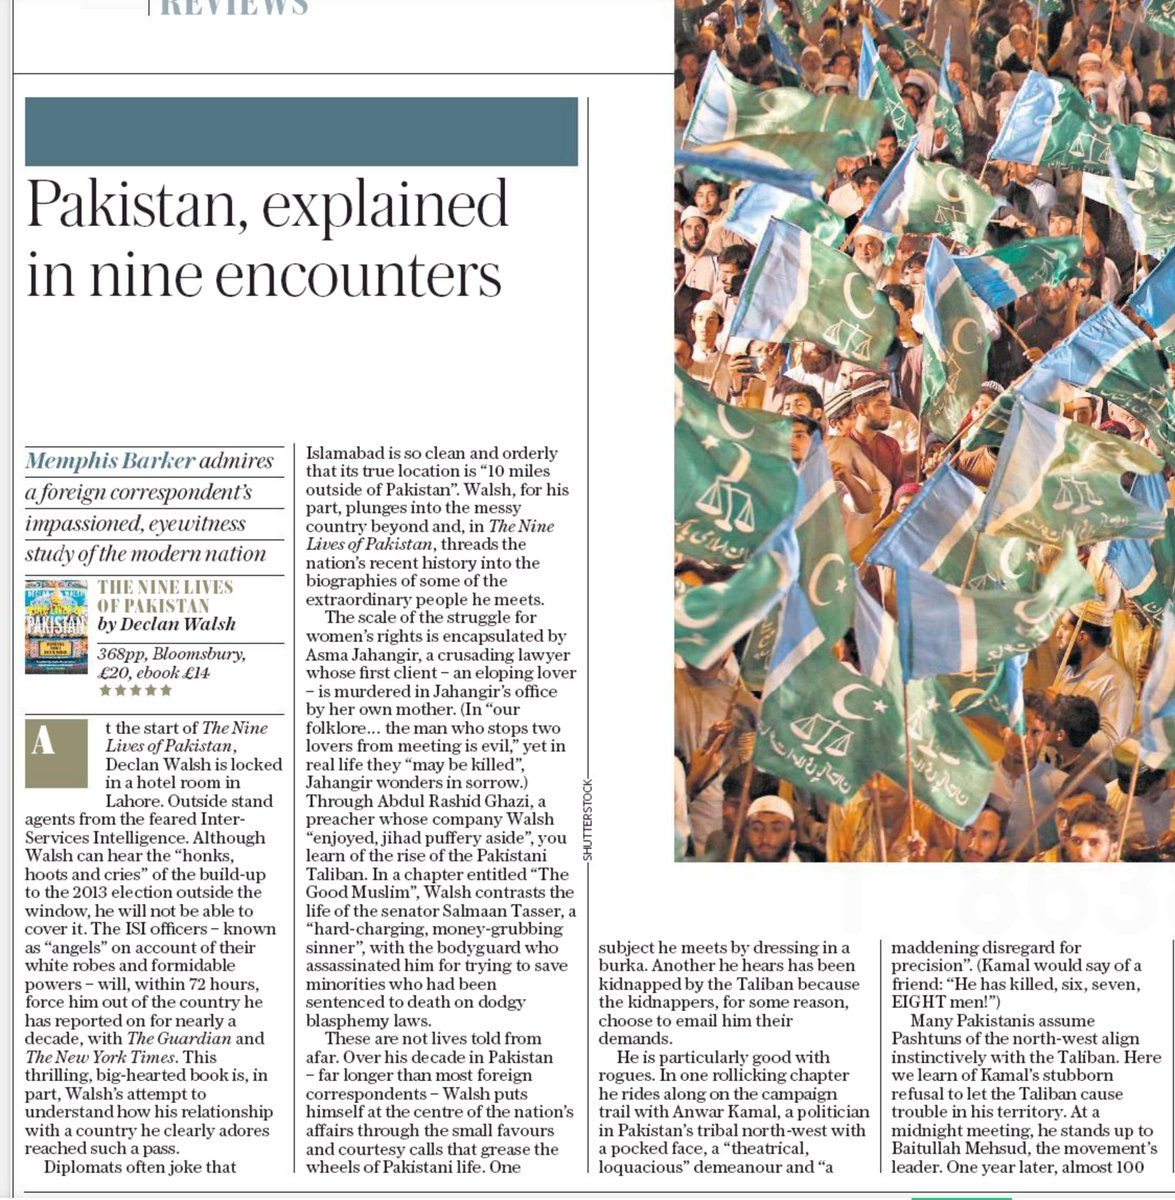 "Delighted with this generous 5* review of The Nine Lives of Pakistan in @telegraph by @memphisbarker, himself a former Pakistan correspondent. ""Particularly good with rogues,"" he says. I can hardly think of a higher compliment. https://t.co/2WYt0XNg33"